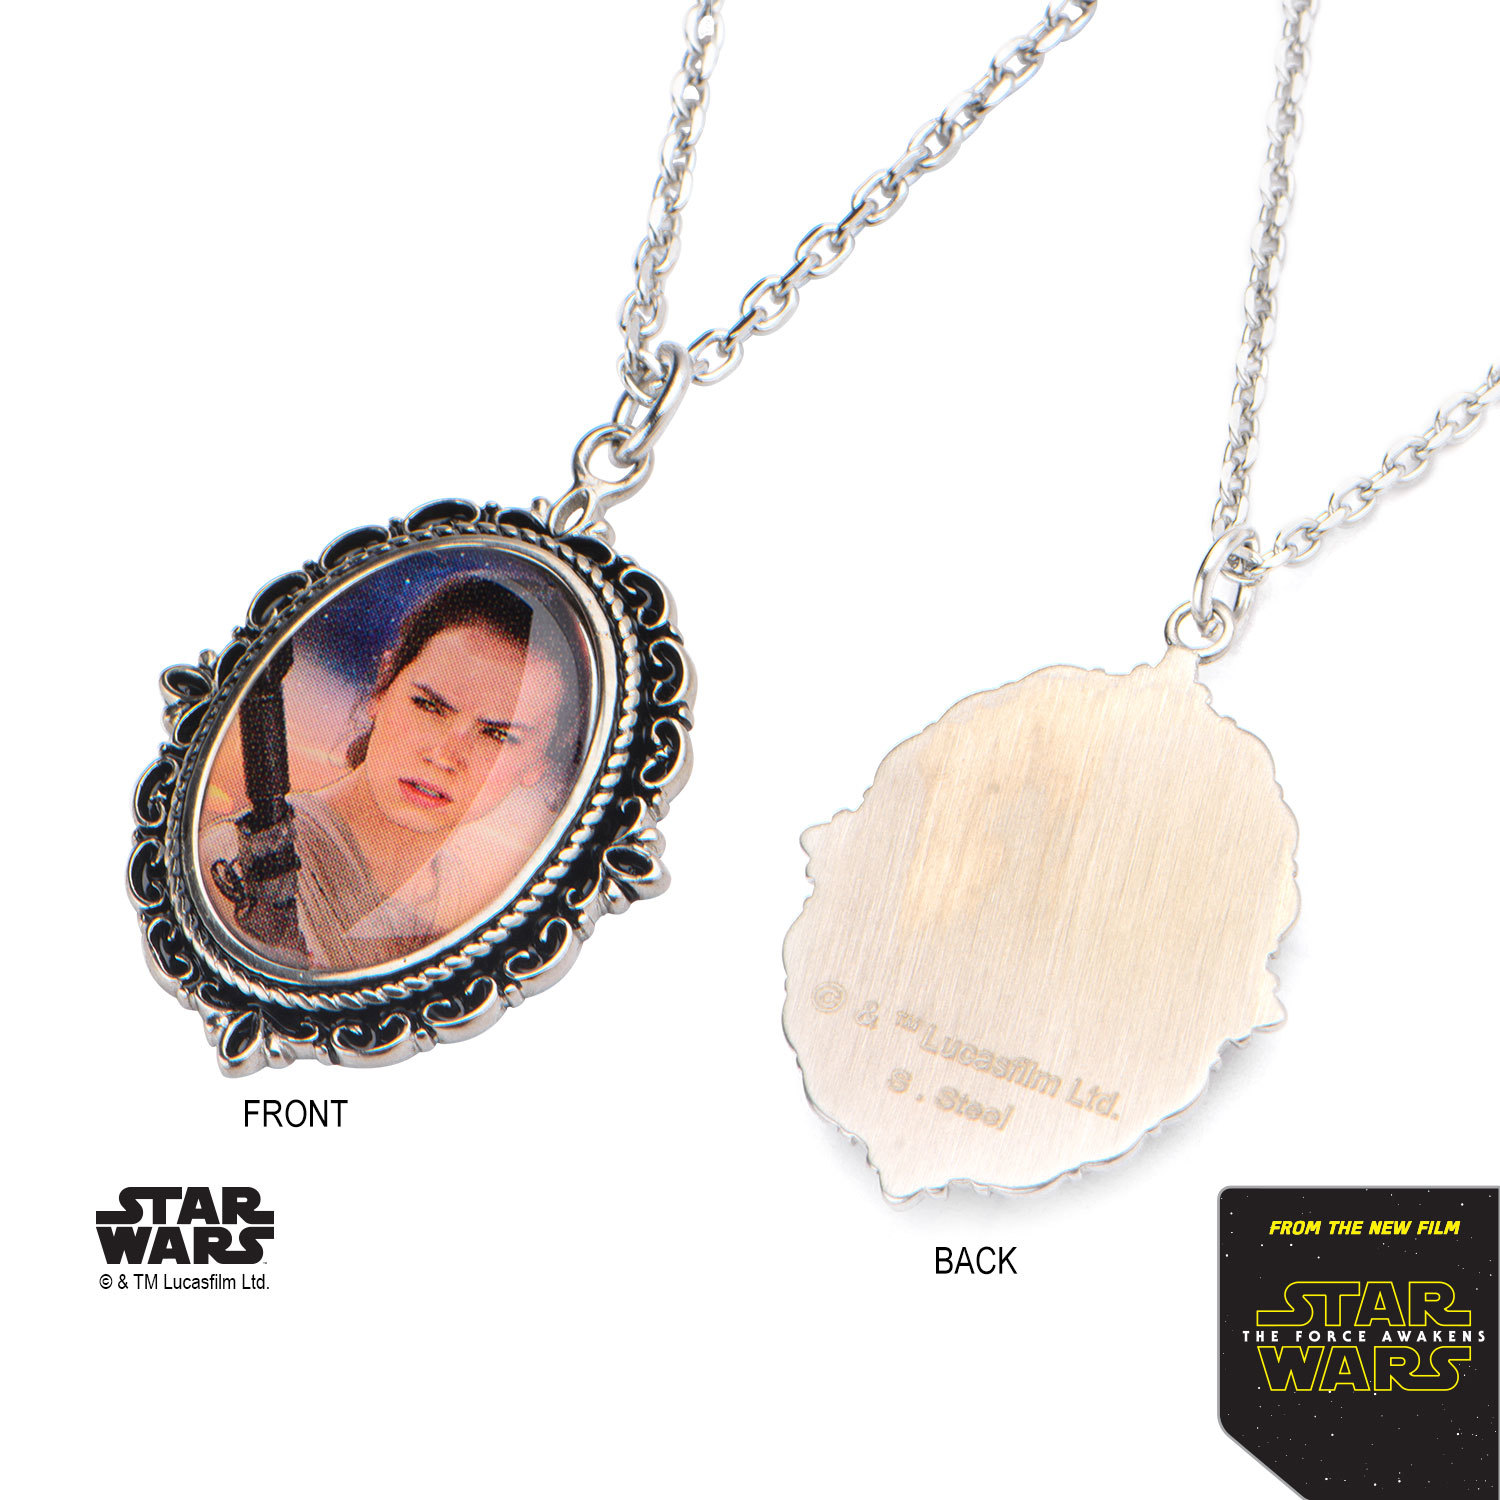 Star Wars Stainless Steel Rey Cameo Pendant image